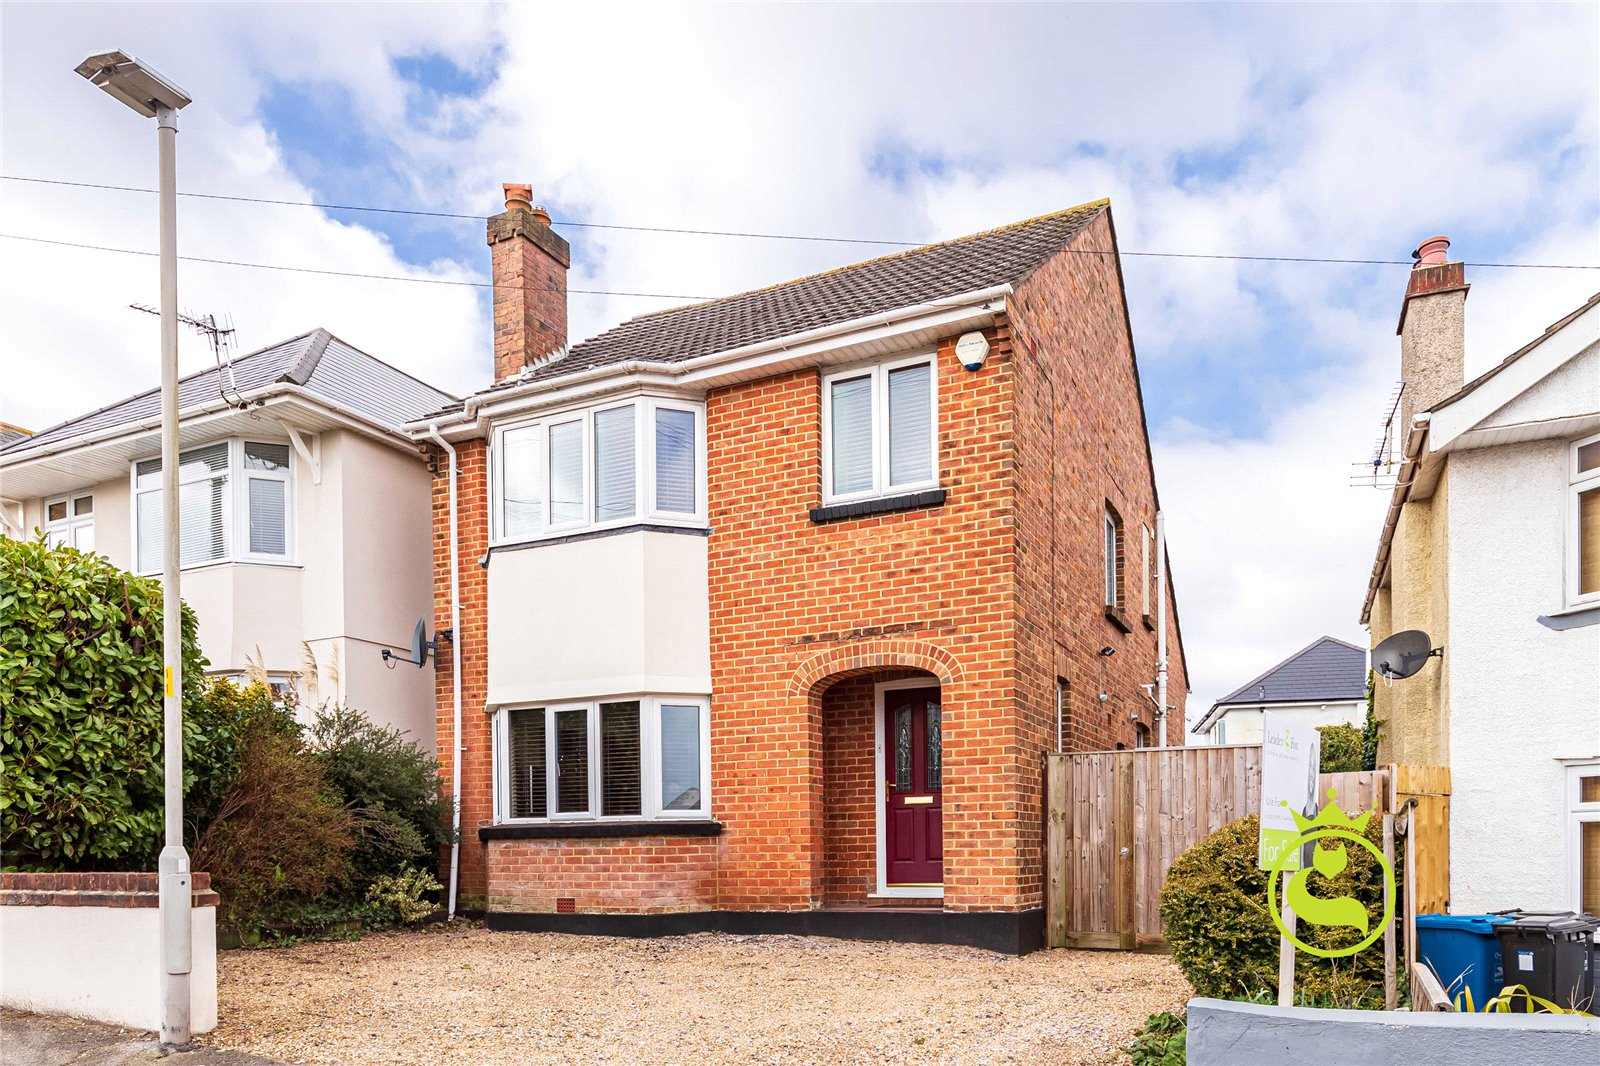 3 bed house for sale in Cranbrook Road, Parkstone - Property Image 1